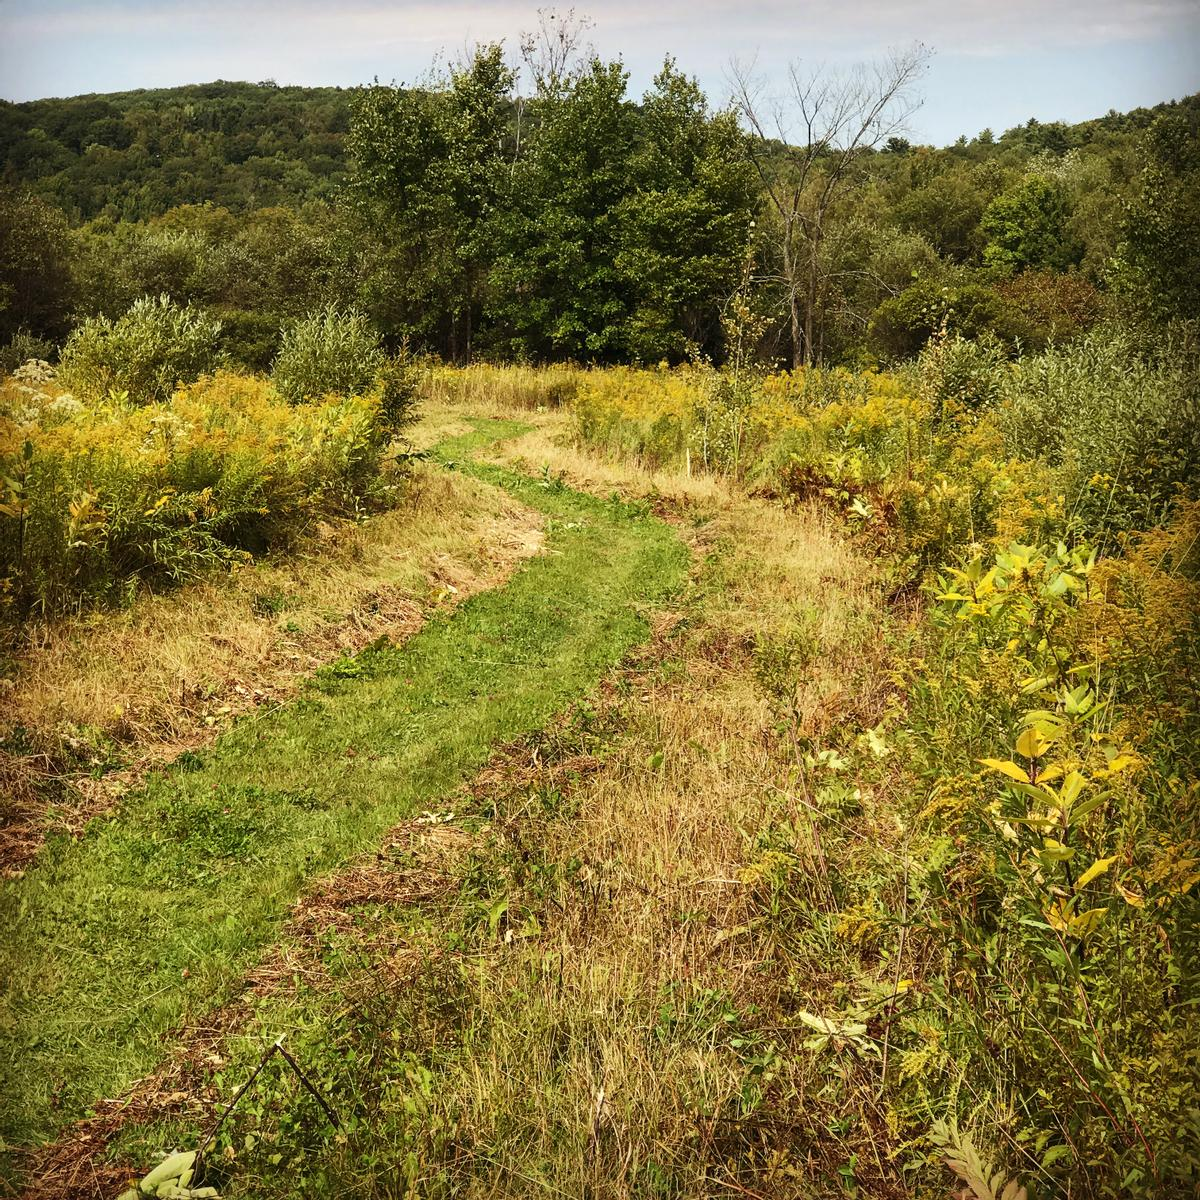 A recently mowed path shows where the trail goes through a field of wildflowers